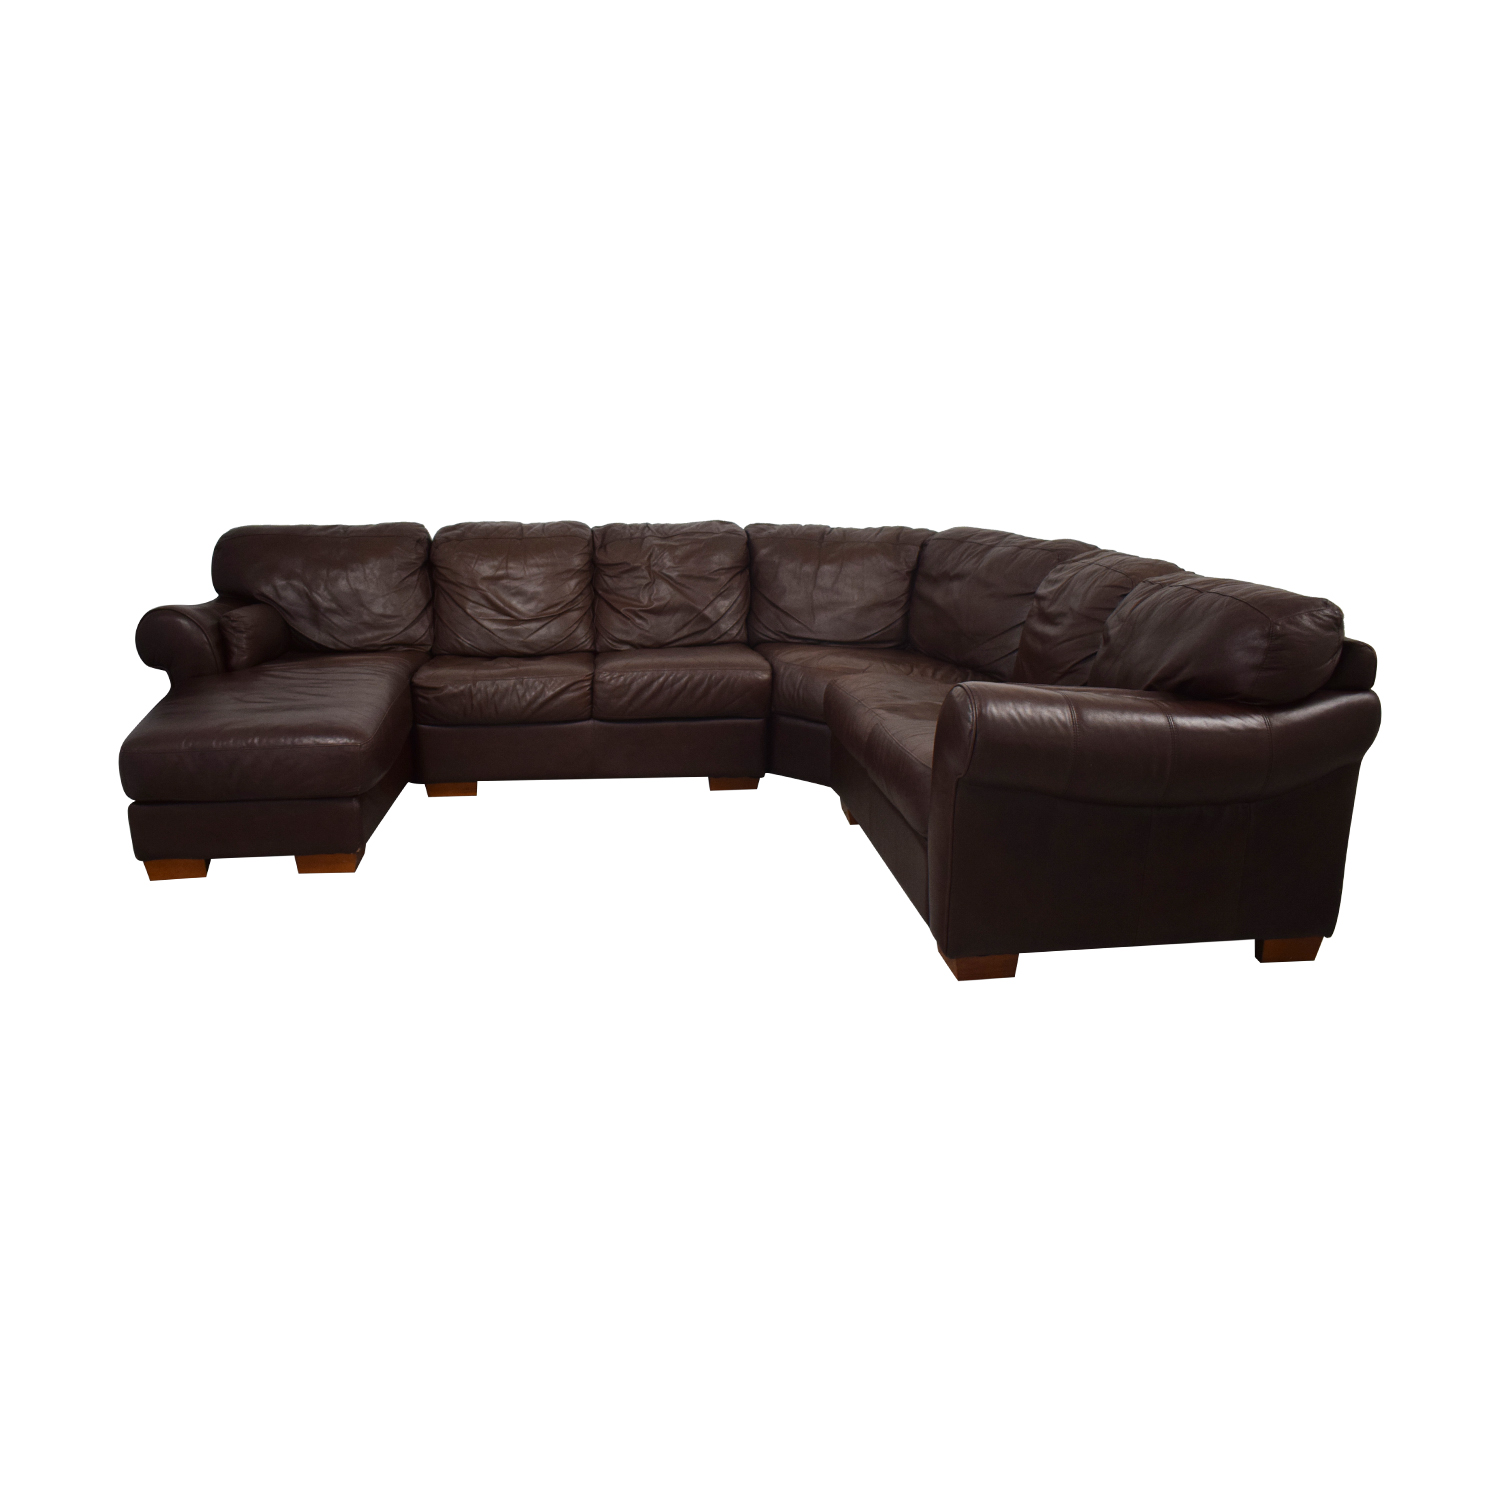 Chateau D'Ax Chateau D'Ax Divani Brown Leather L Sectional Couch with Chaise Sofas